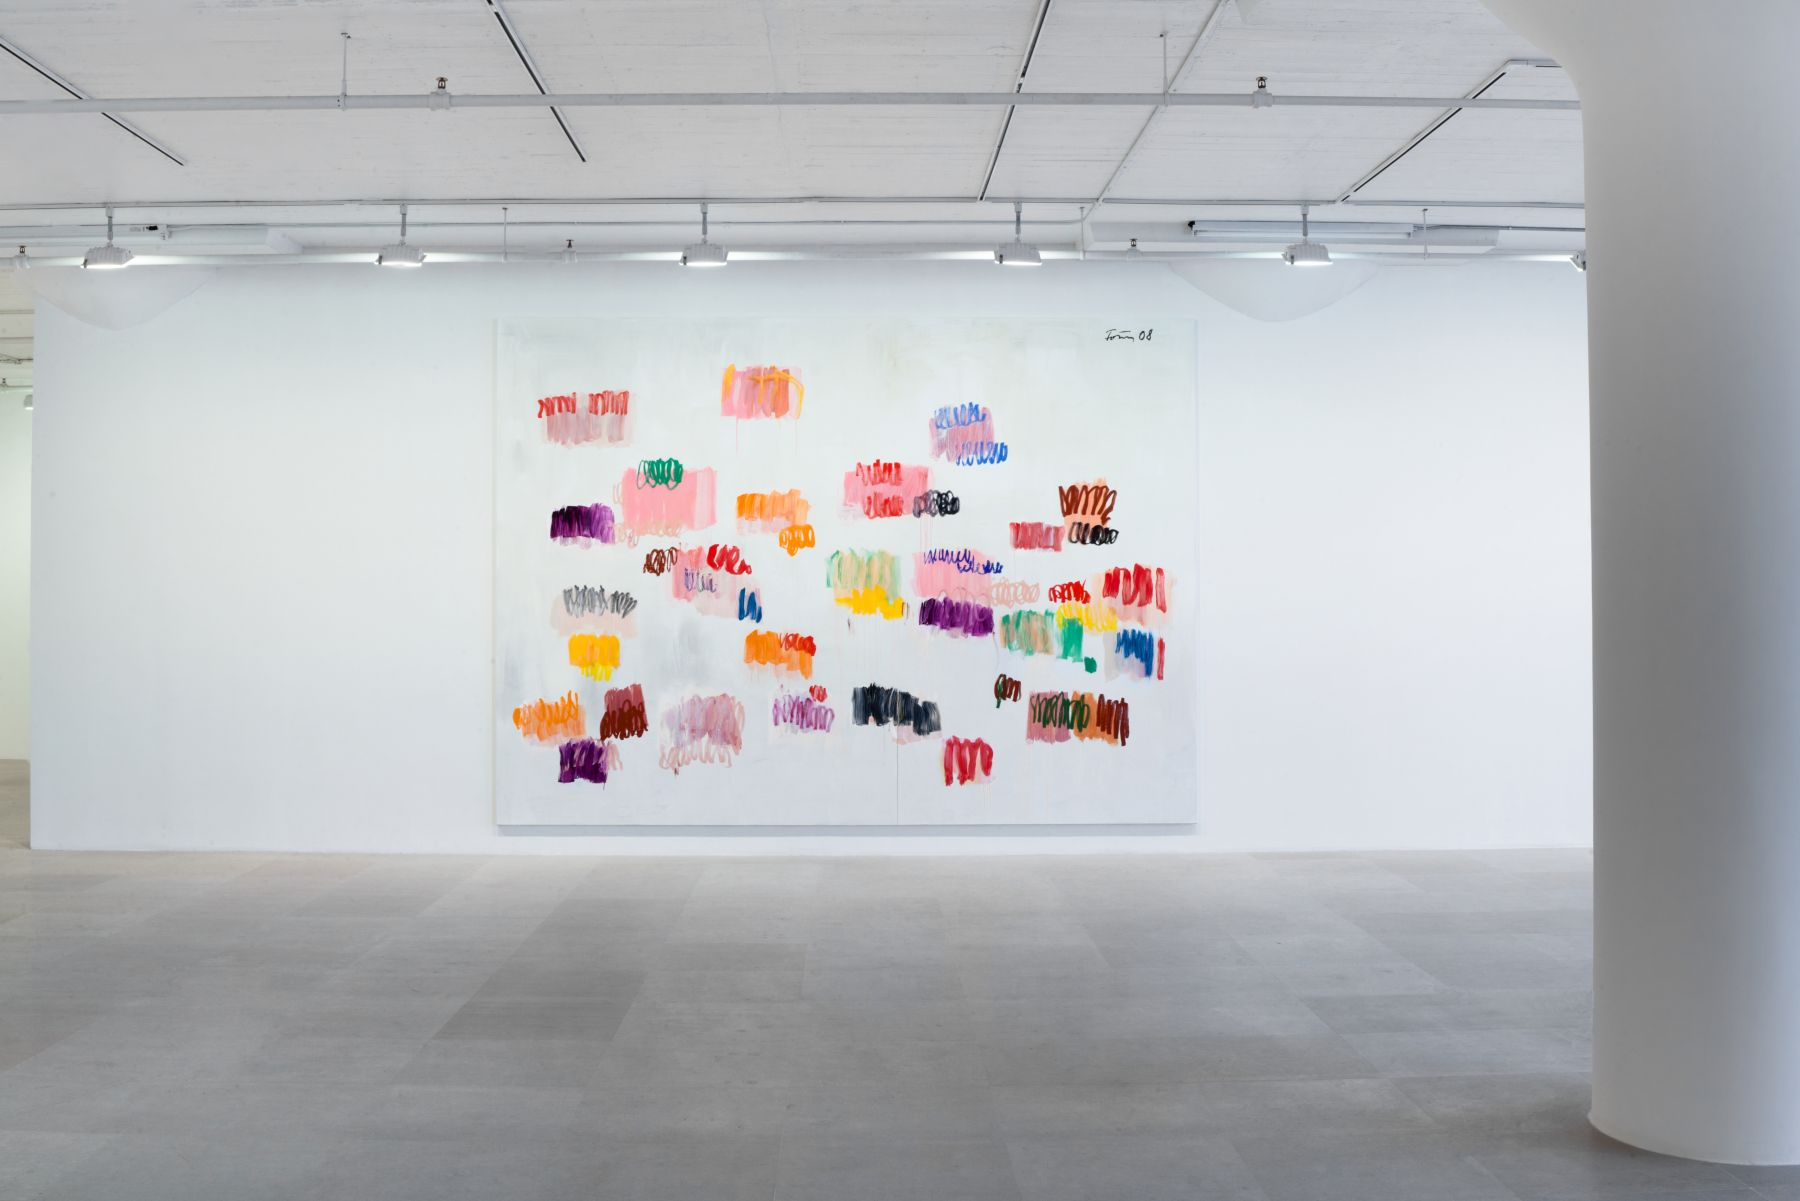 Günther Förg, Untitled, 2007, Acrylic and oil on canvas, 114 1/8 x 157 1/2 inches, Installation view, Greene Naftali, New York, 2012